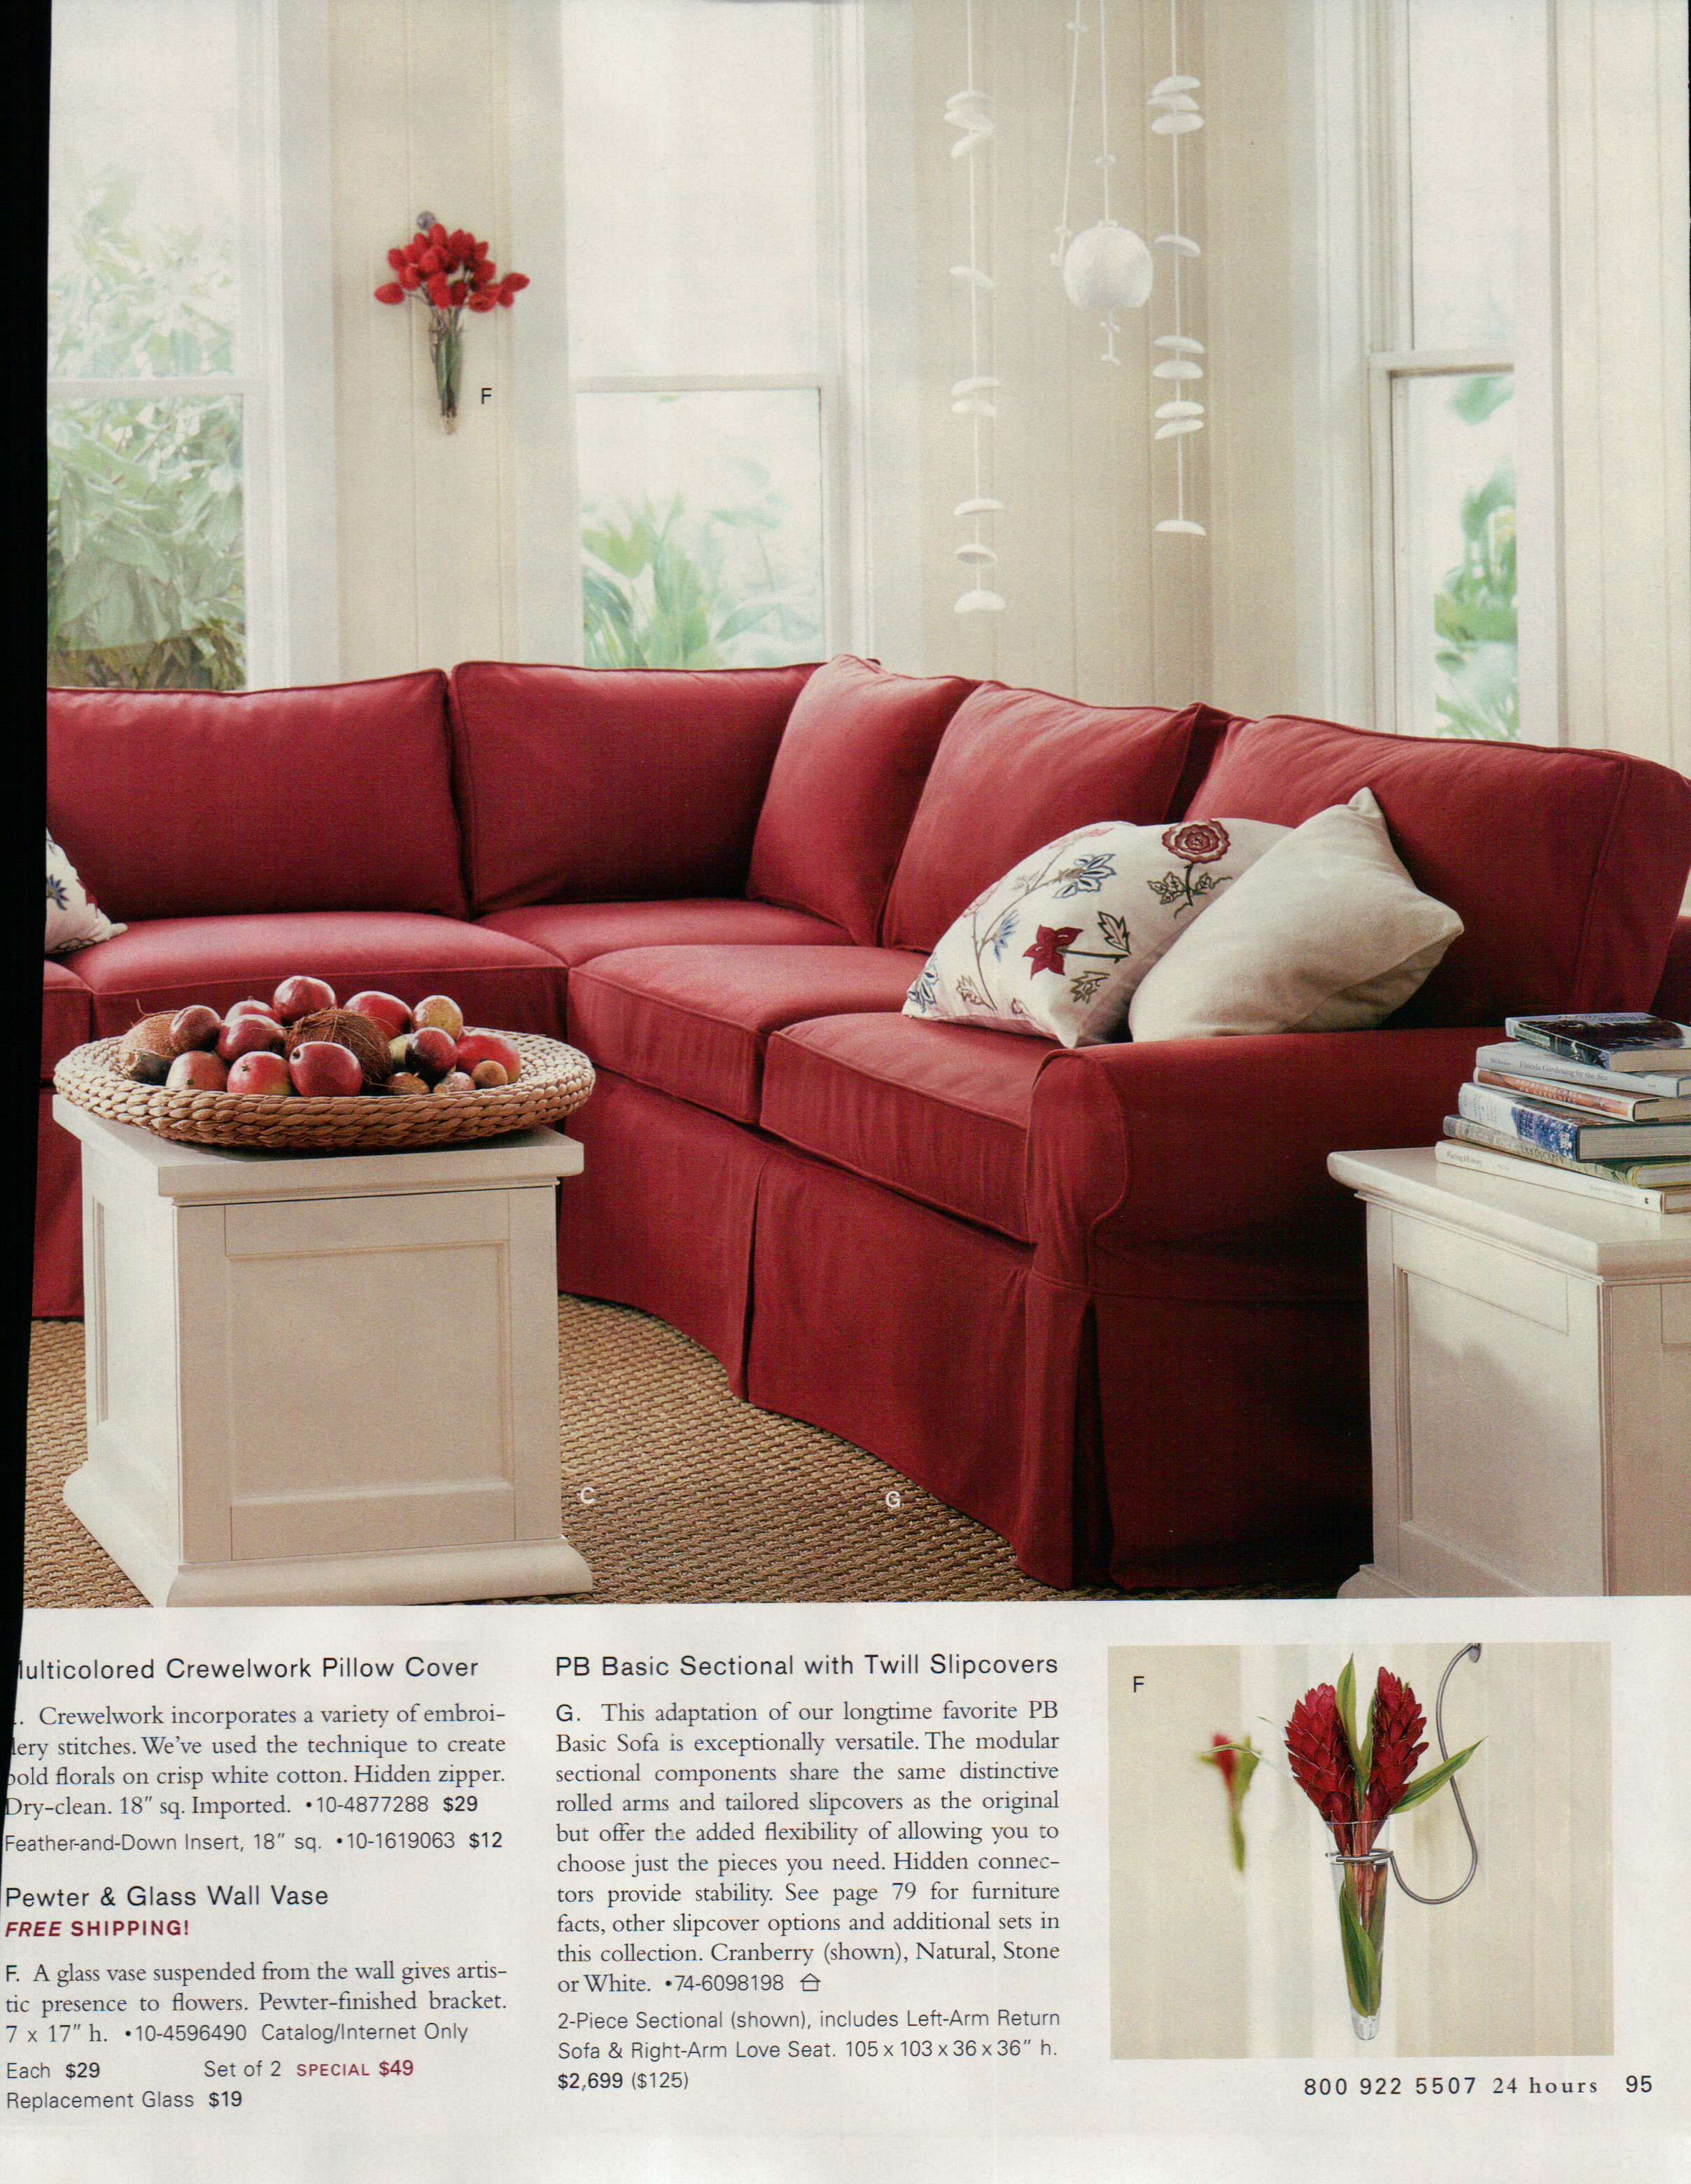 Red couch with white accents and natural rug